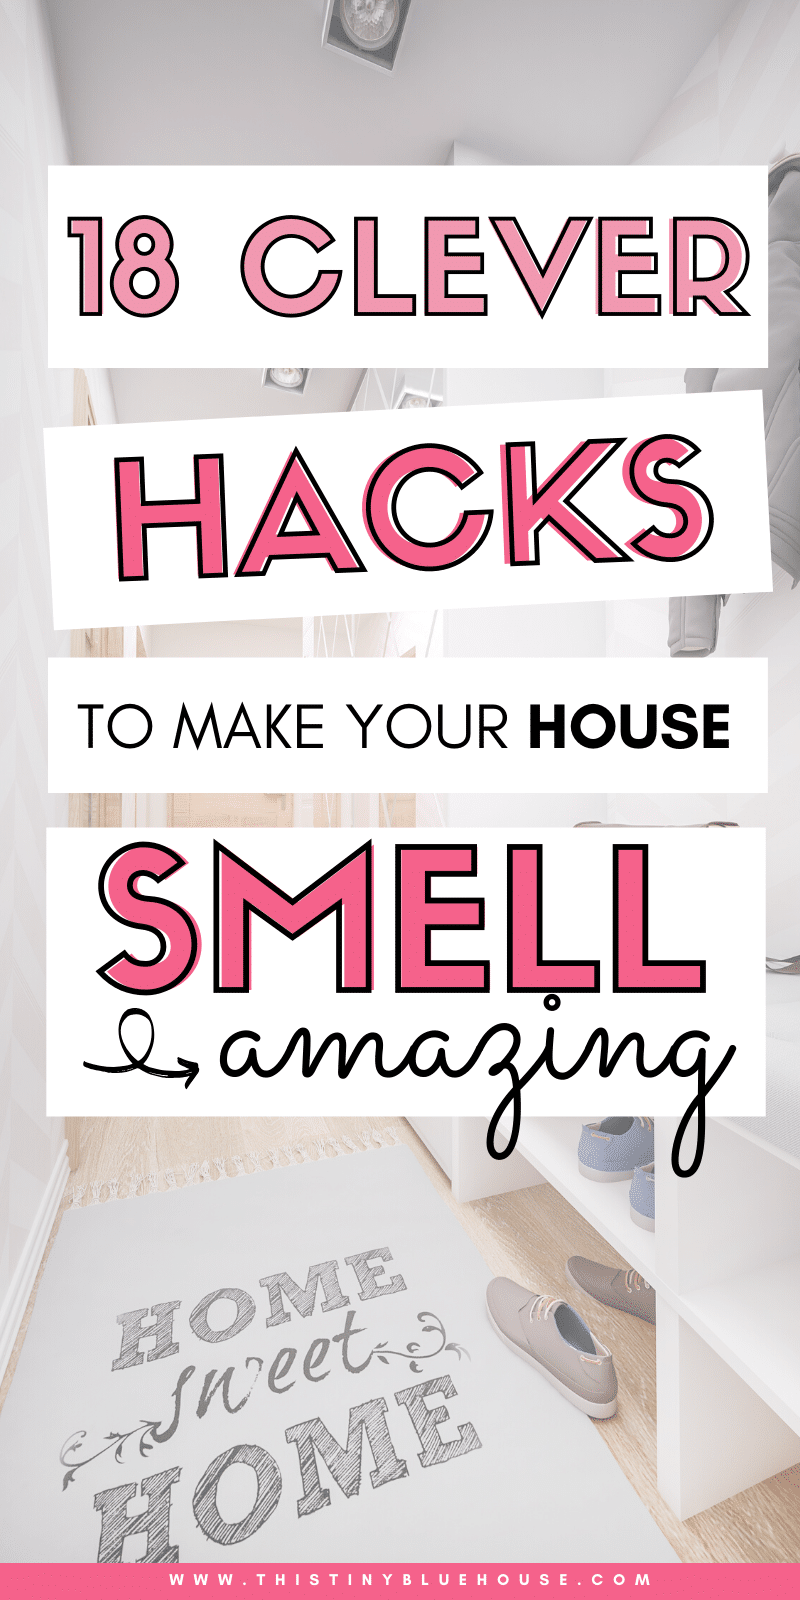 Get rid of stinky house odors with these 18 clever hacks to make your house smell absolutely AMAZING. #smellhacks #makehousesmellgood #deoderlzestinkyhouse #stinkyhousehacks #waystomakeyourhousesmellgood